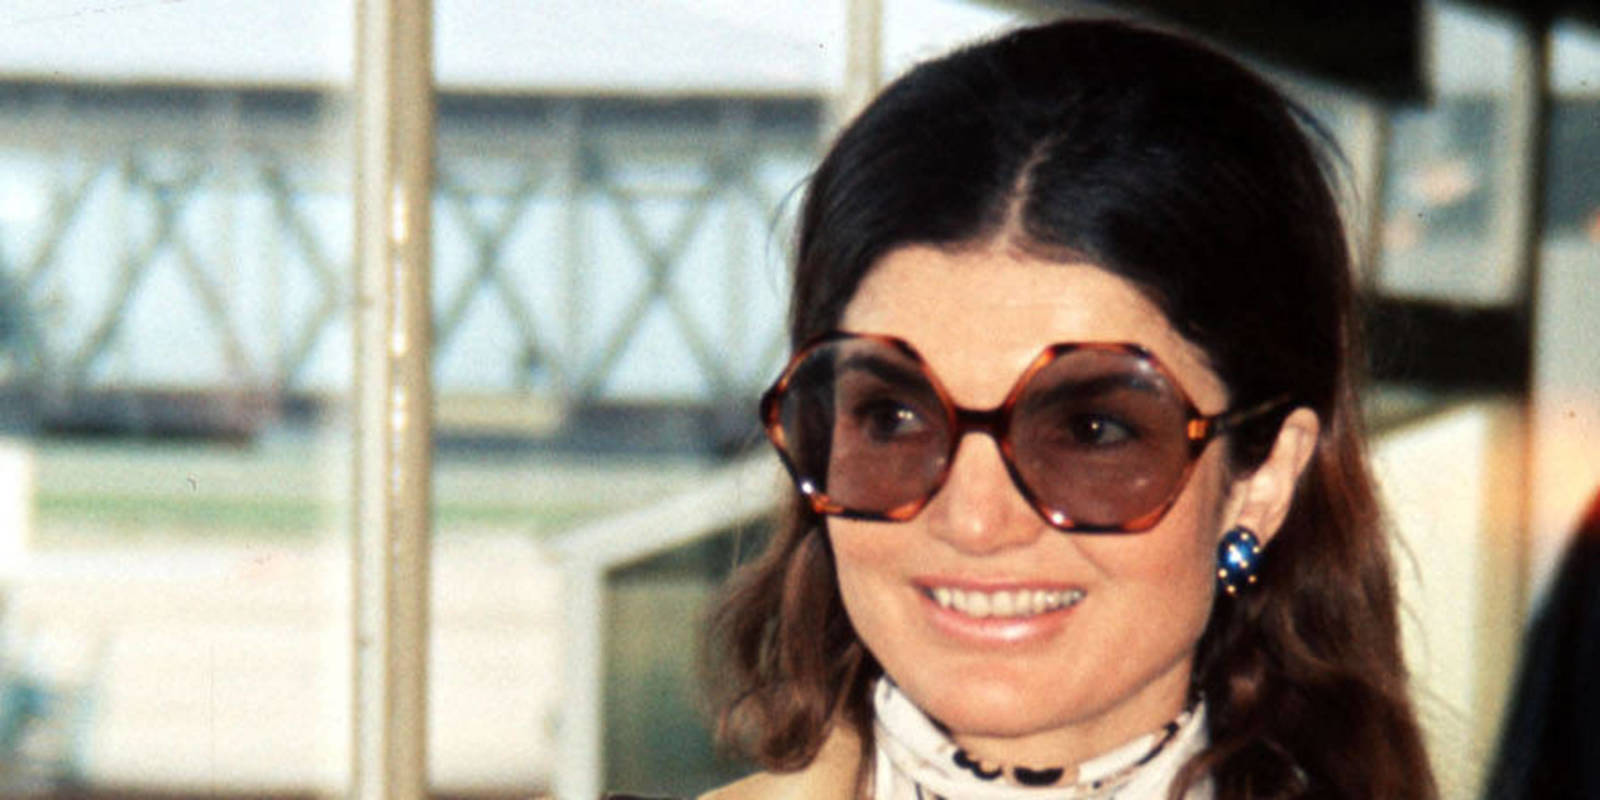 Jackie-sunglasses